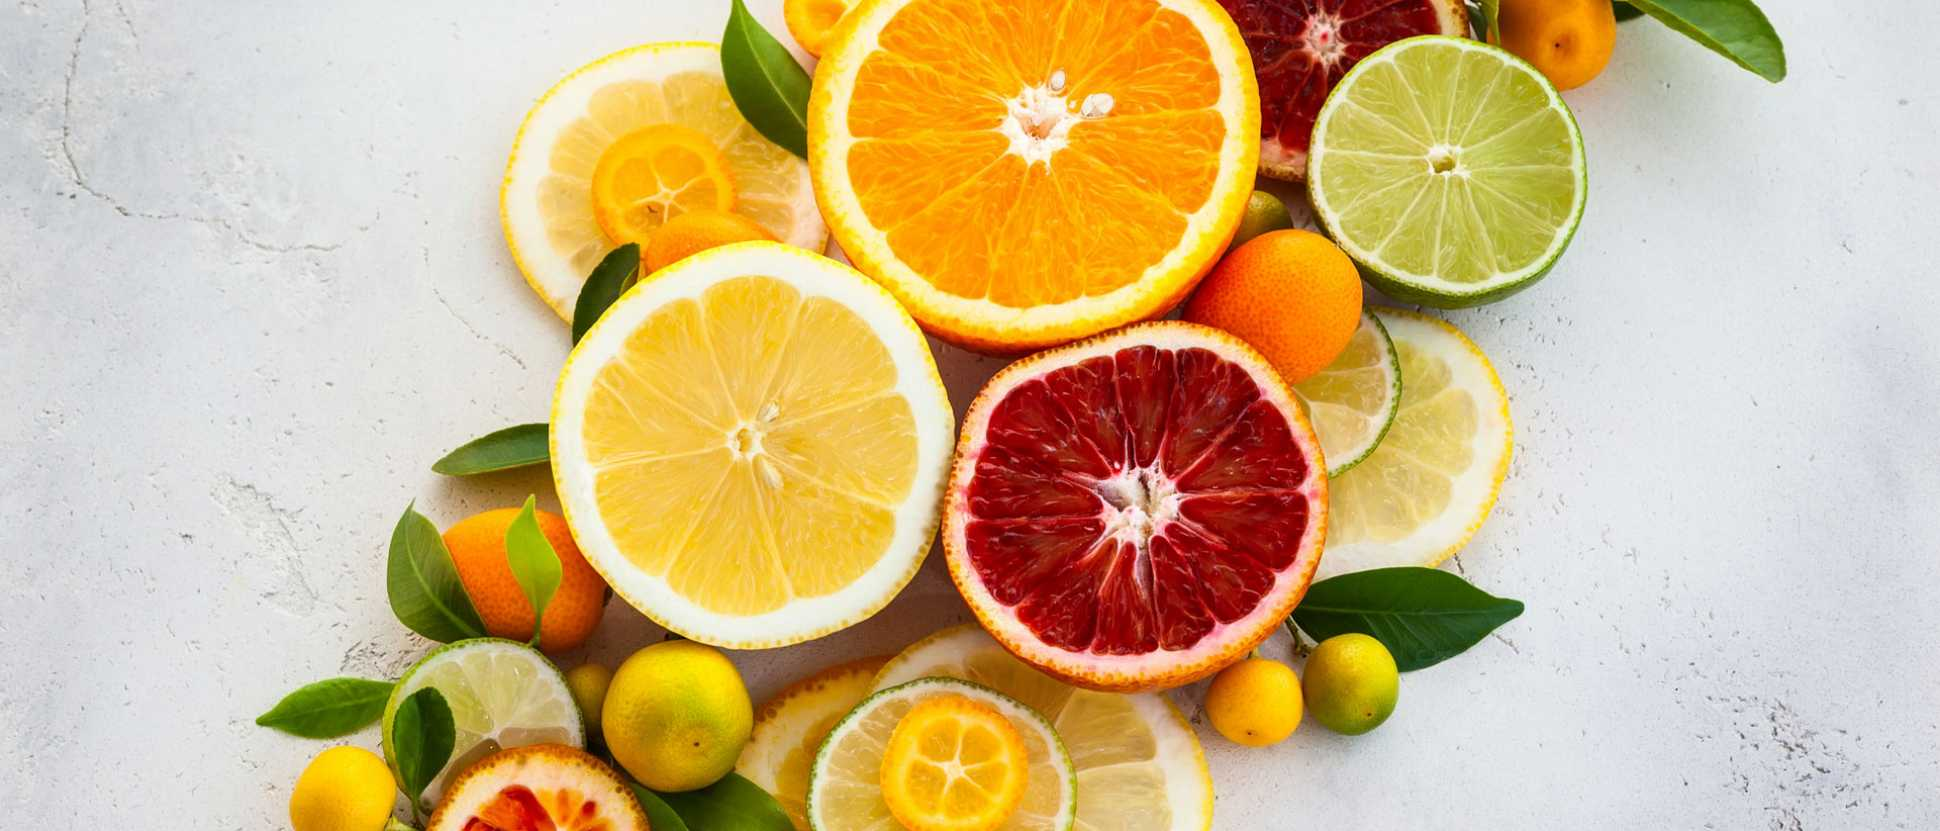 160908-Citrus-fruits-could-help-prevent-obesity-related-heart-disease-liver-disease-diabetesjpg